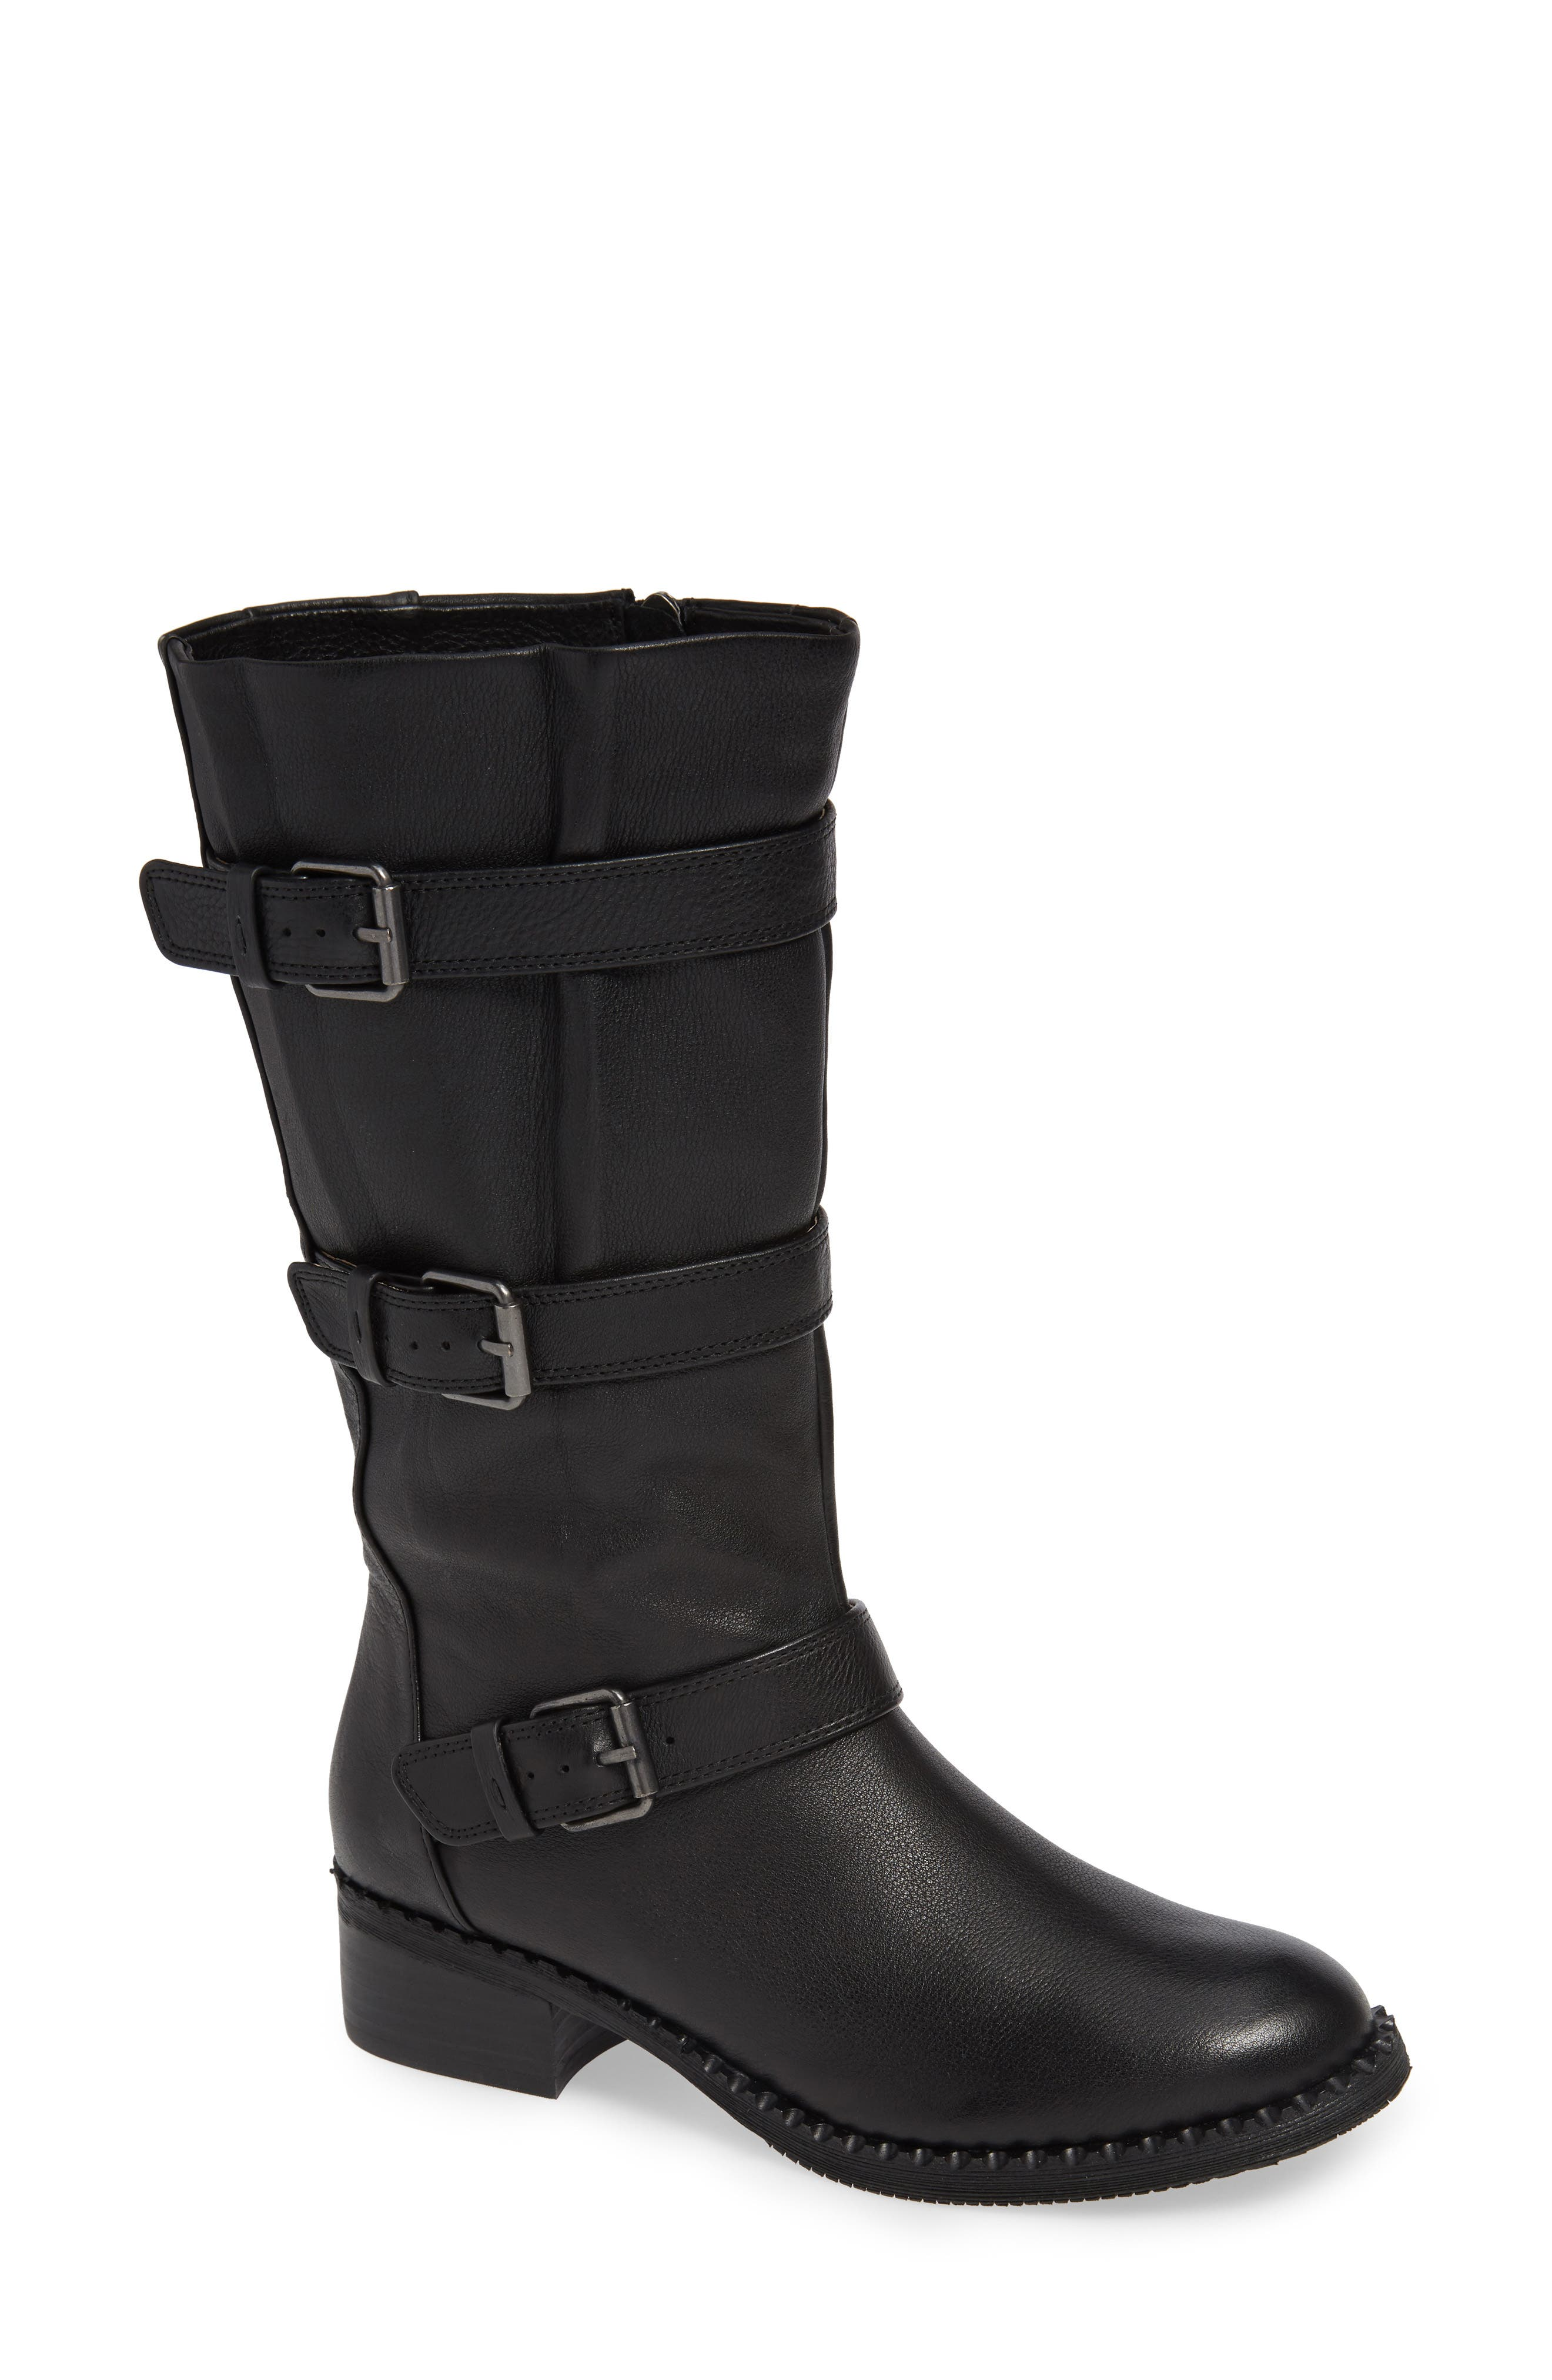 GENTLE SOULS BY KENNETH COLE, Best 3-Buckle Boot, Main thumbnail 1, color, 001